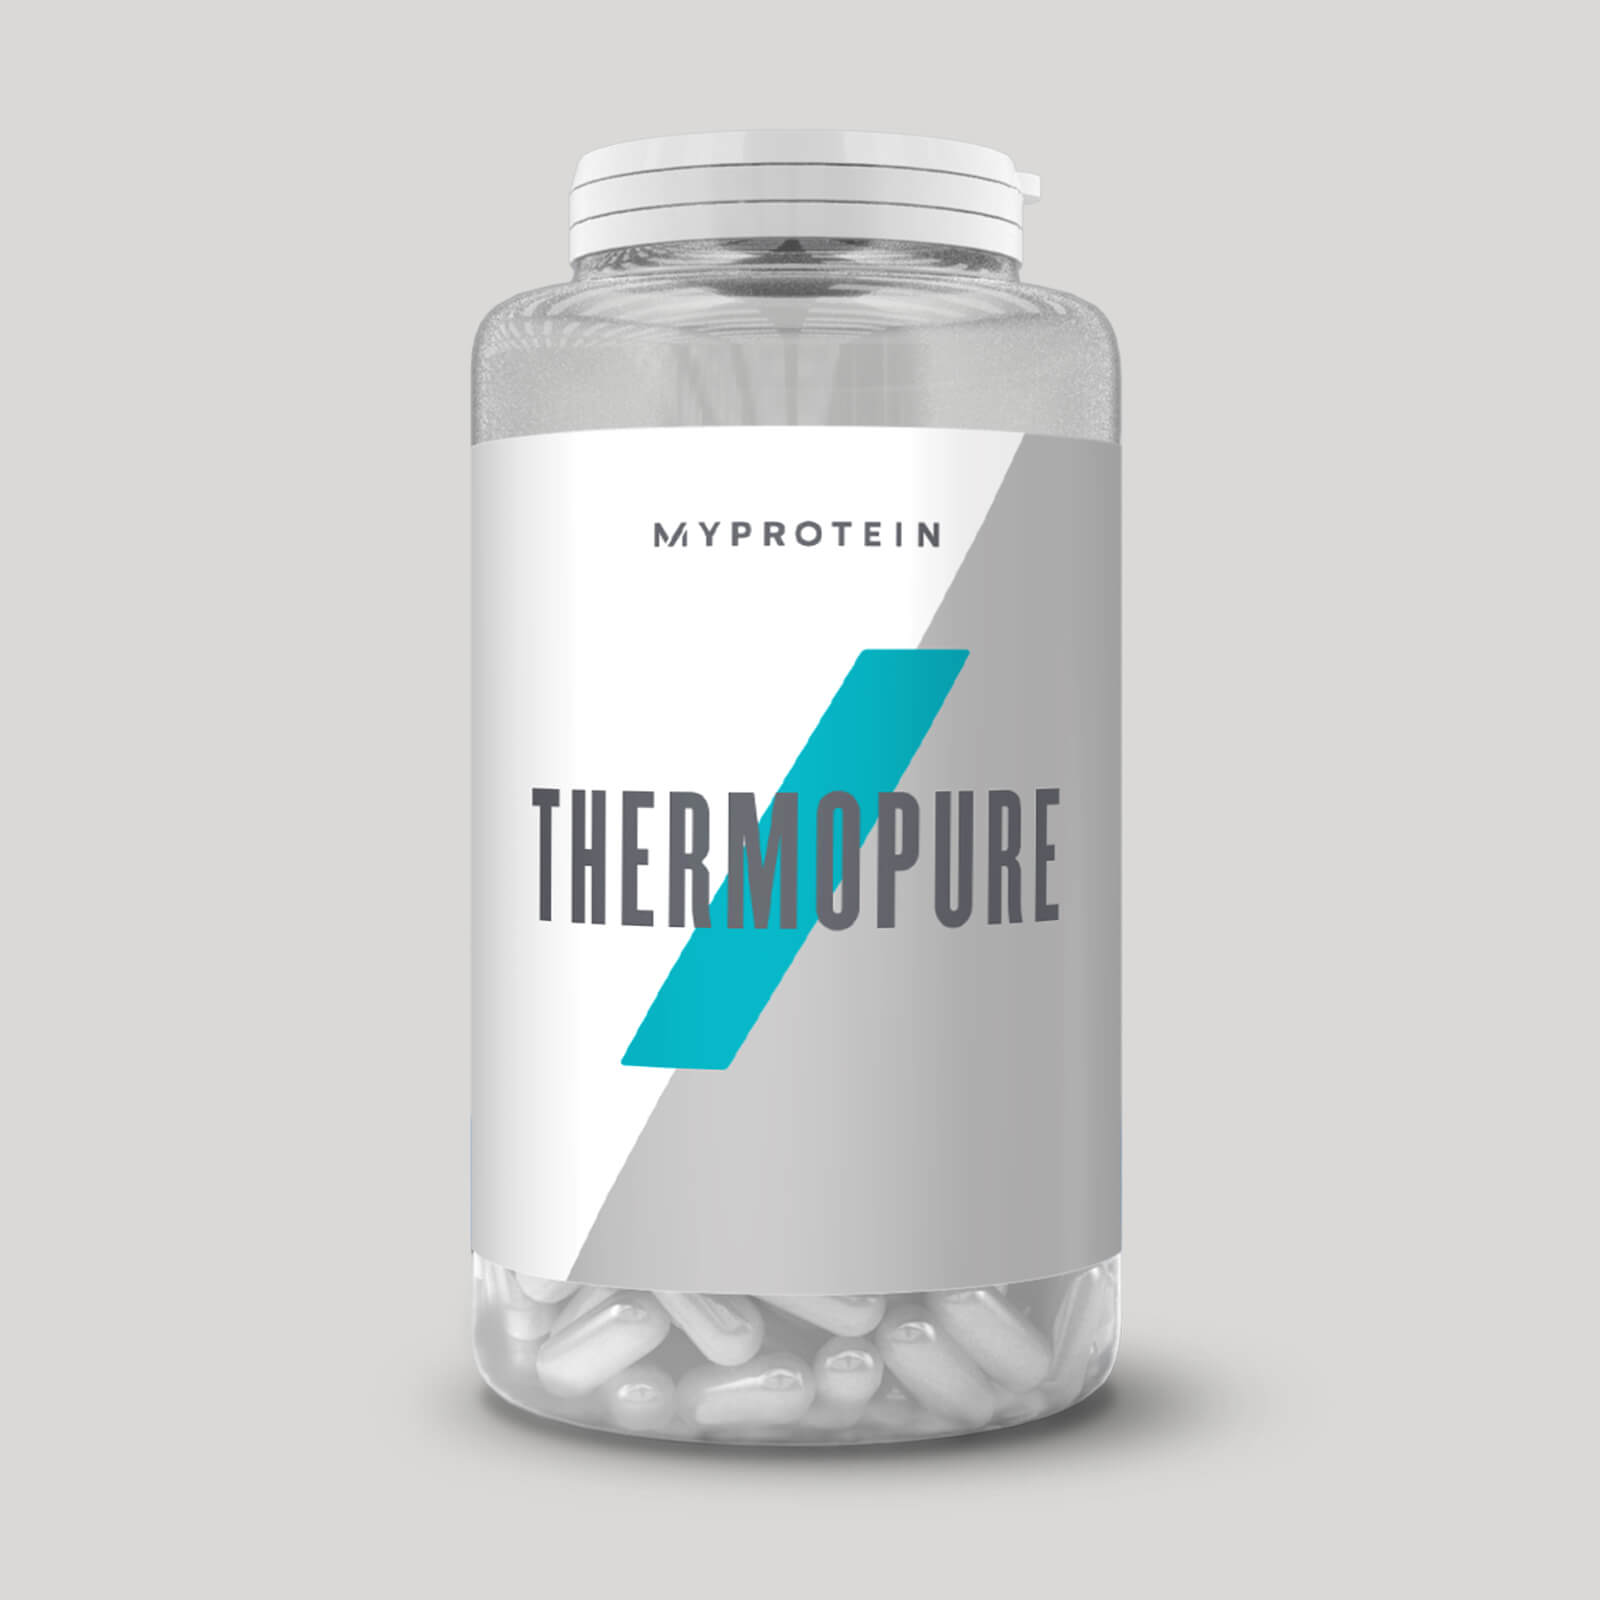 Myprotein Thermopure - 90Capsules - Unflavoured